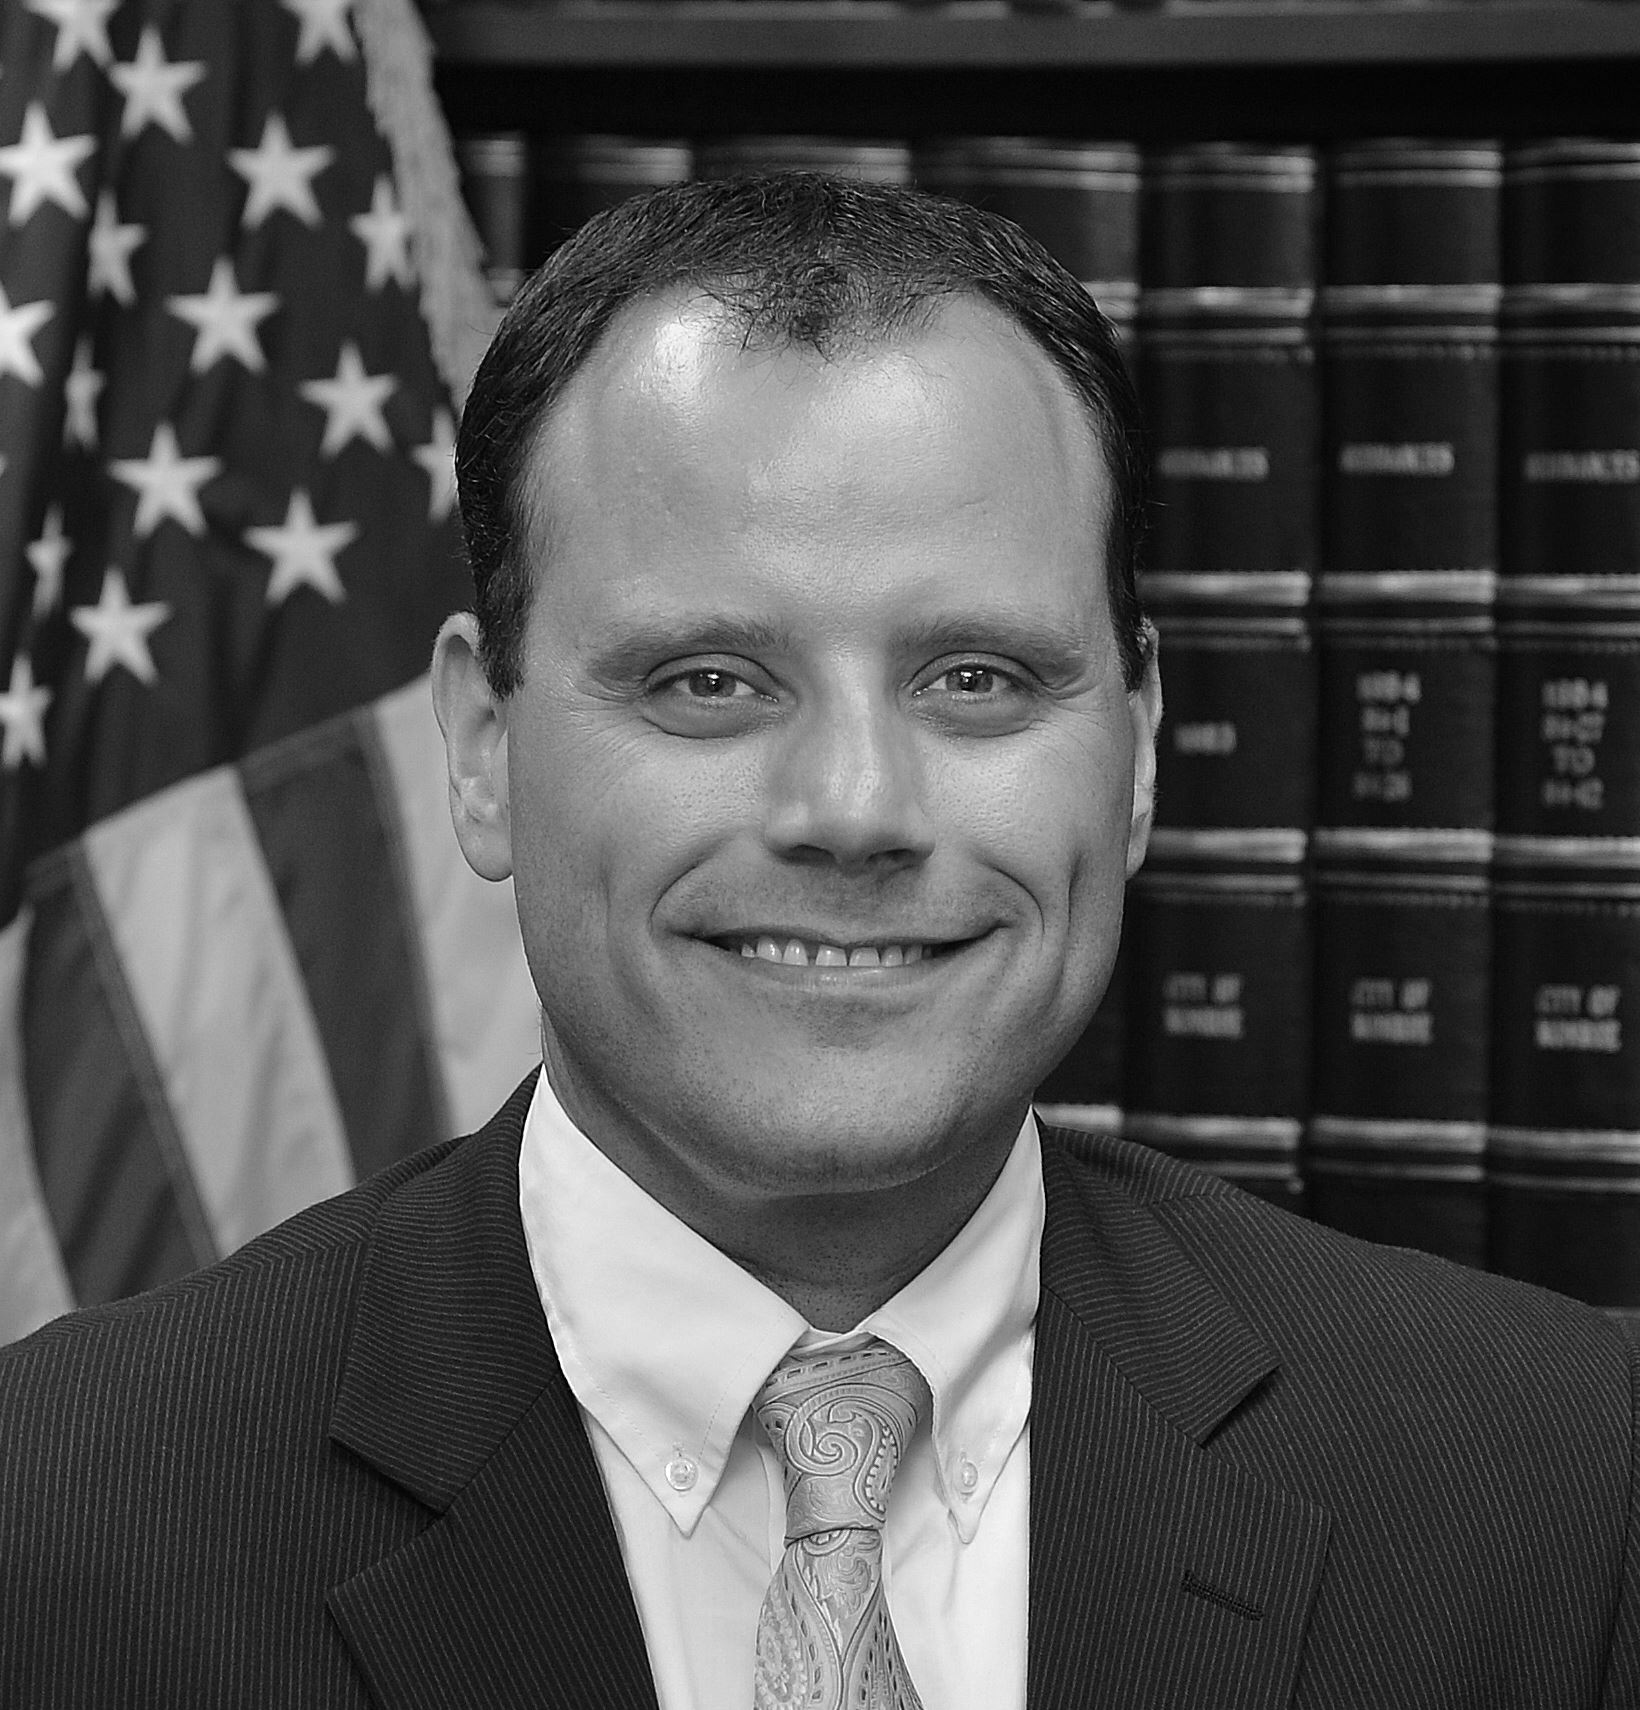 Black and white headshot of a man in a suit against a background of legal books and the flag